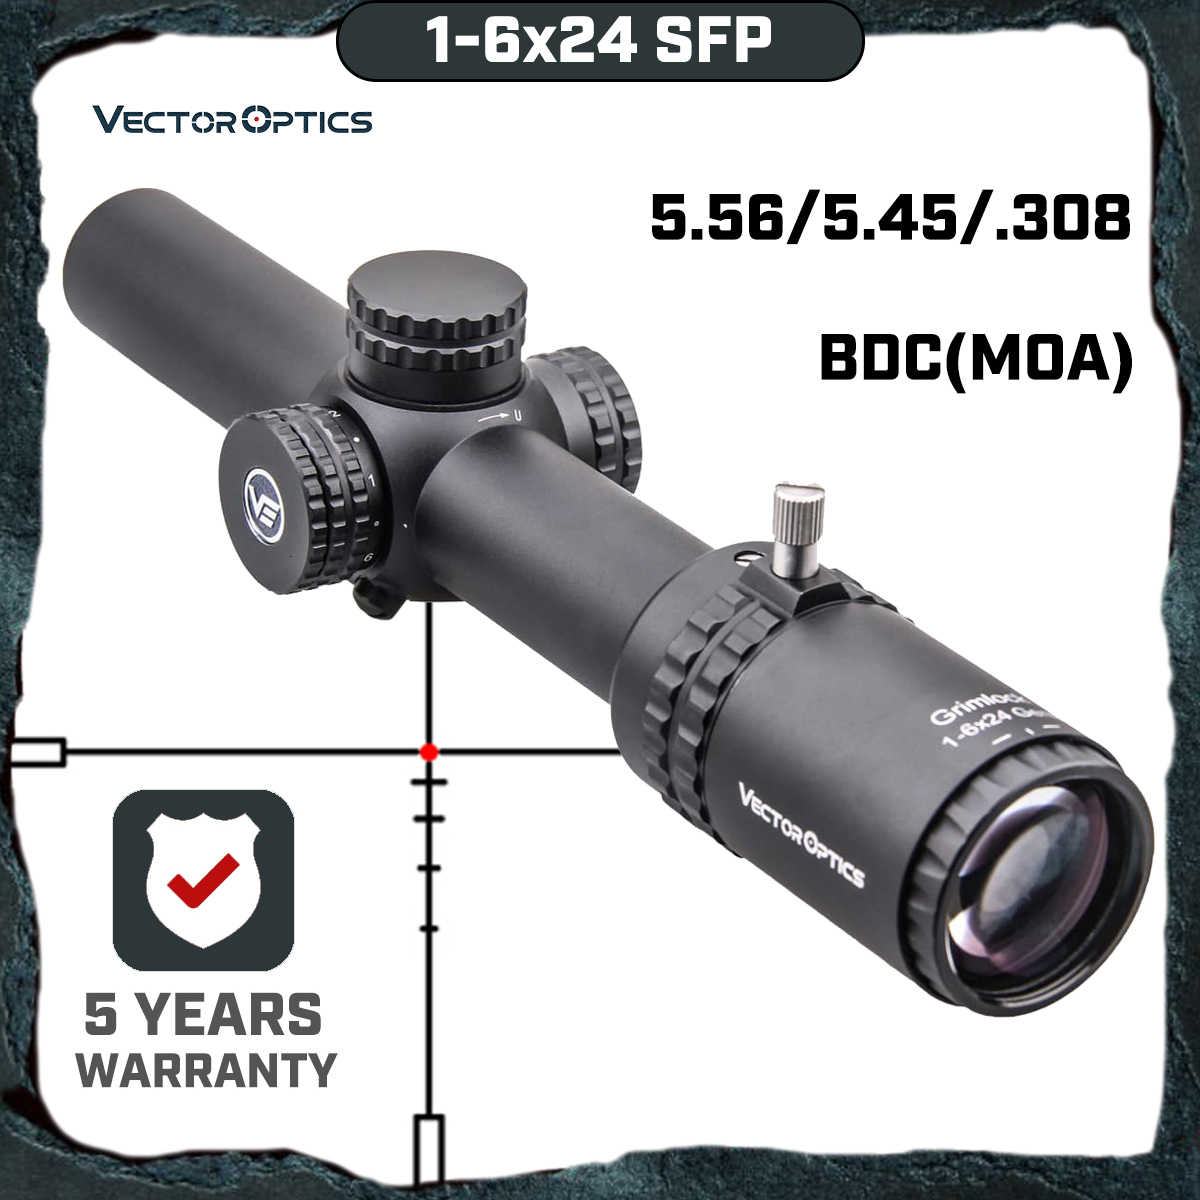 Vector Optics Gen2 Grimlock 1-6x24 BDC (MOA) Ballistic Richtkruis Rifle Scope Center Dot Verlichte CQB Riflescope. 223 AR15. 308